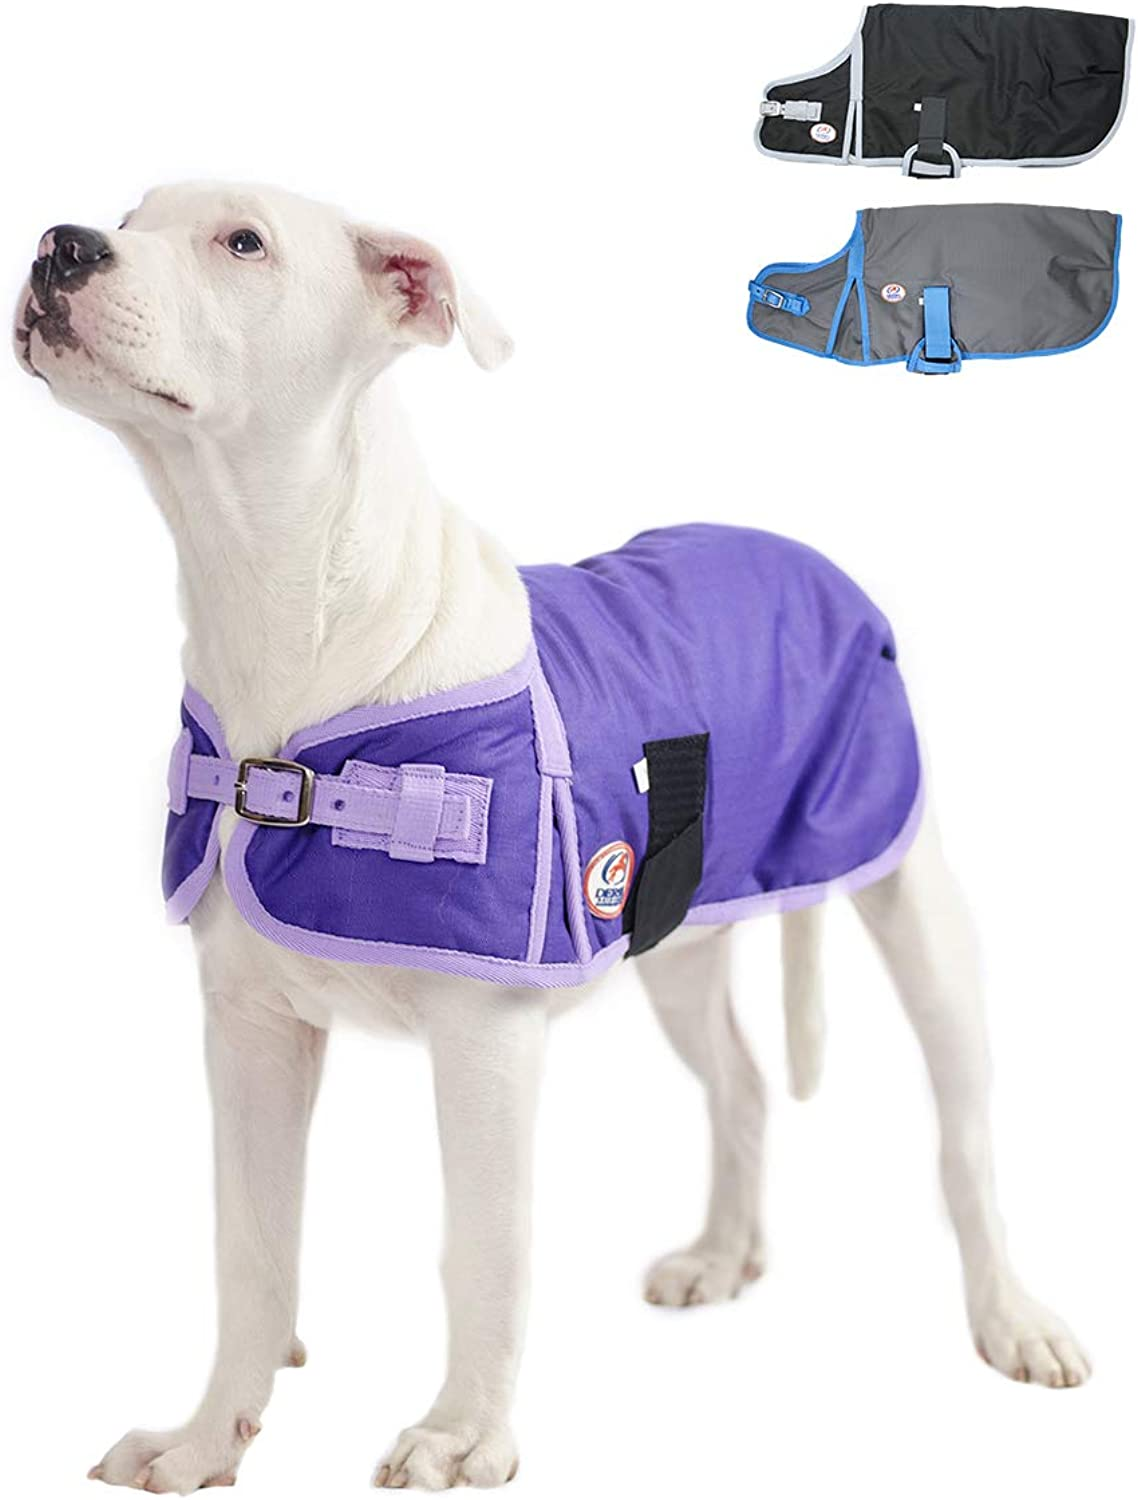 Derby Originals Solid color HorseTough 600D Waterproof Ripstop Nylon Winter Dog Coat 150g Polyfil with One Year Warranty